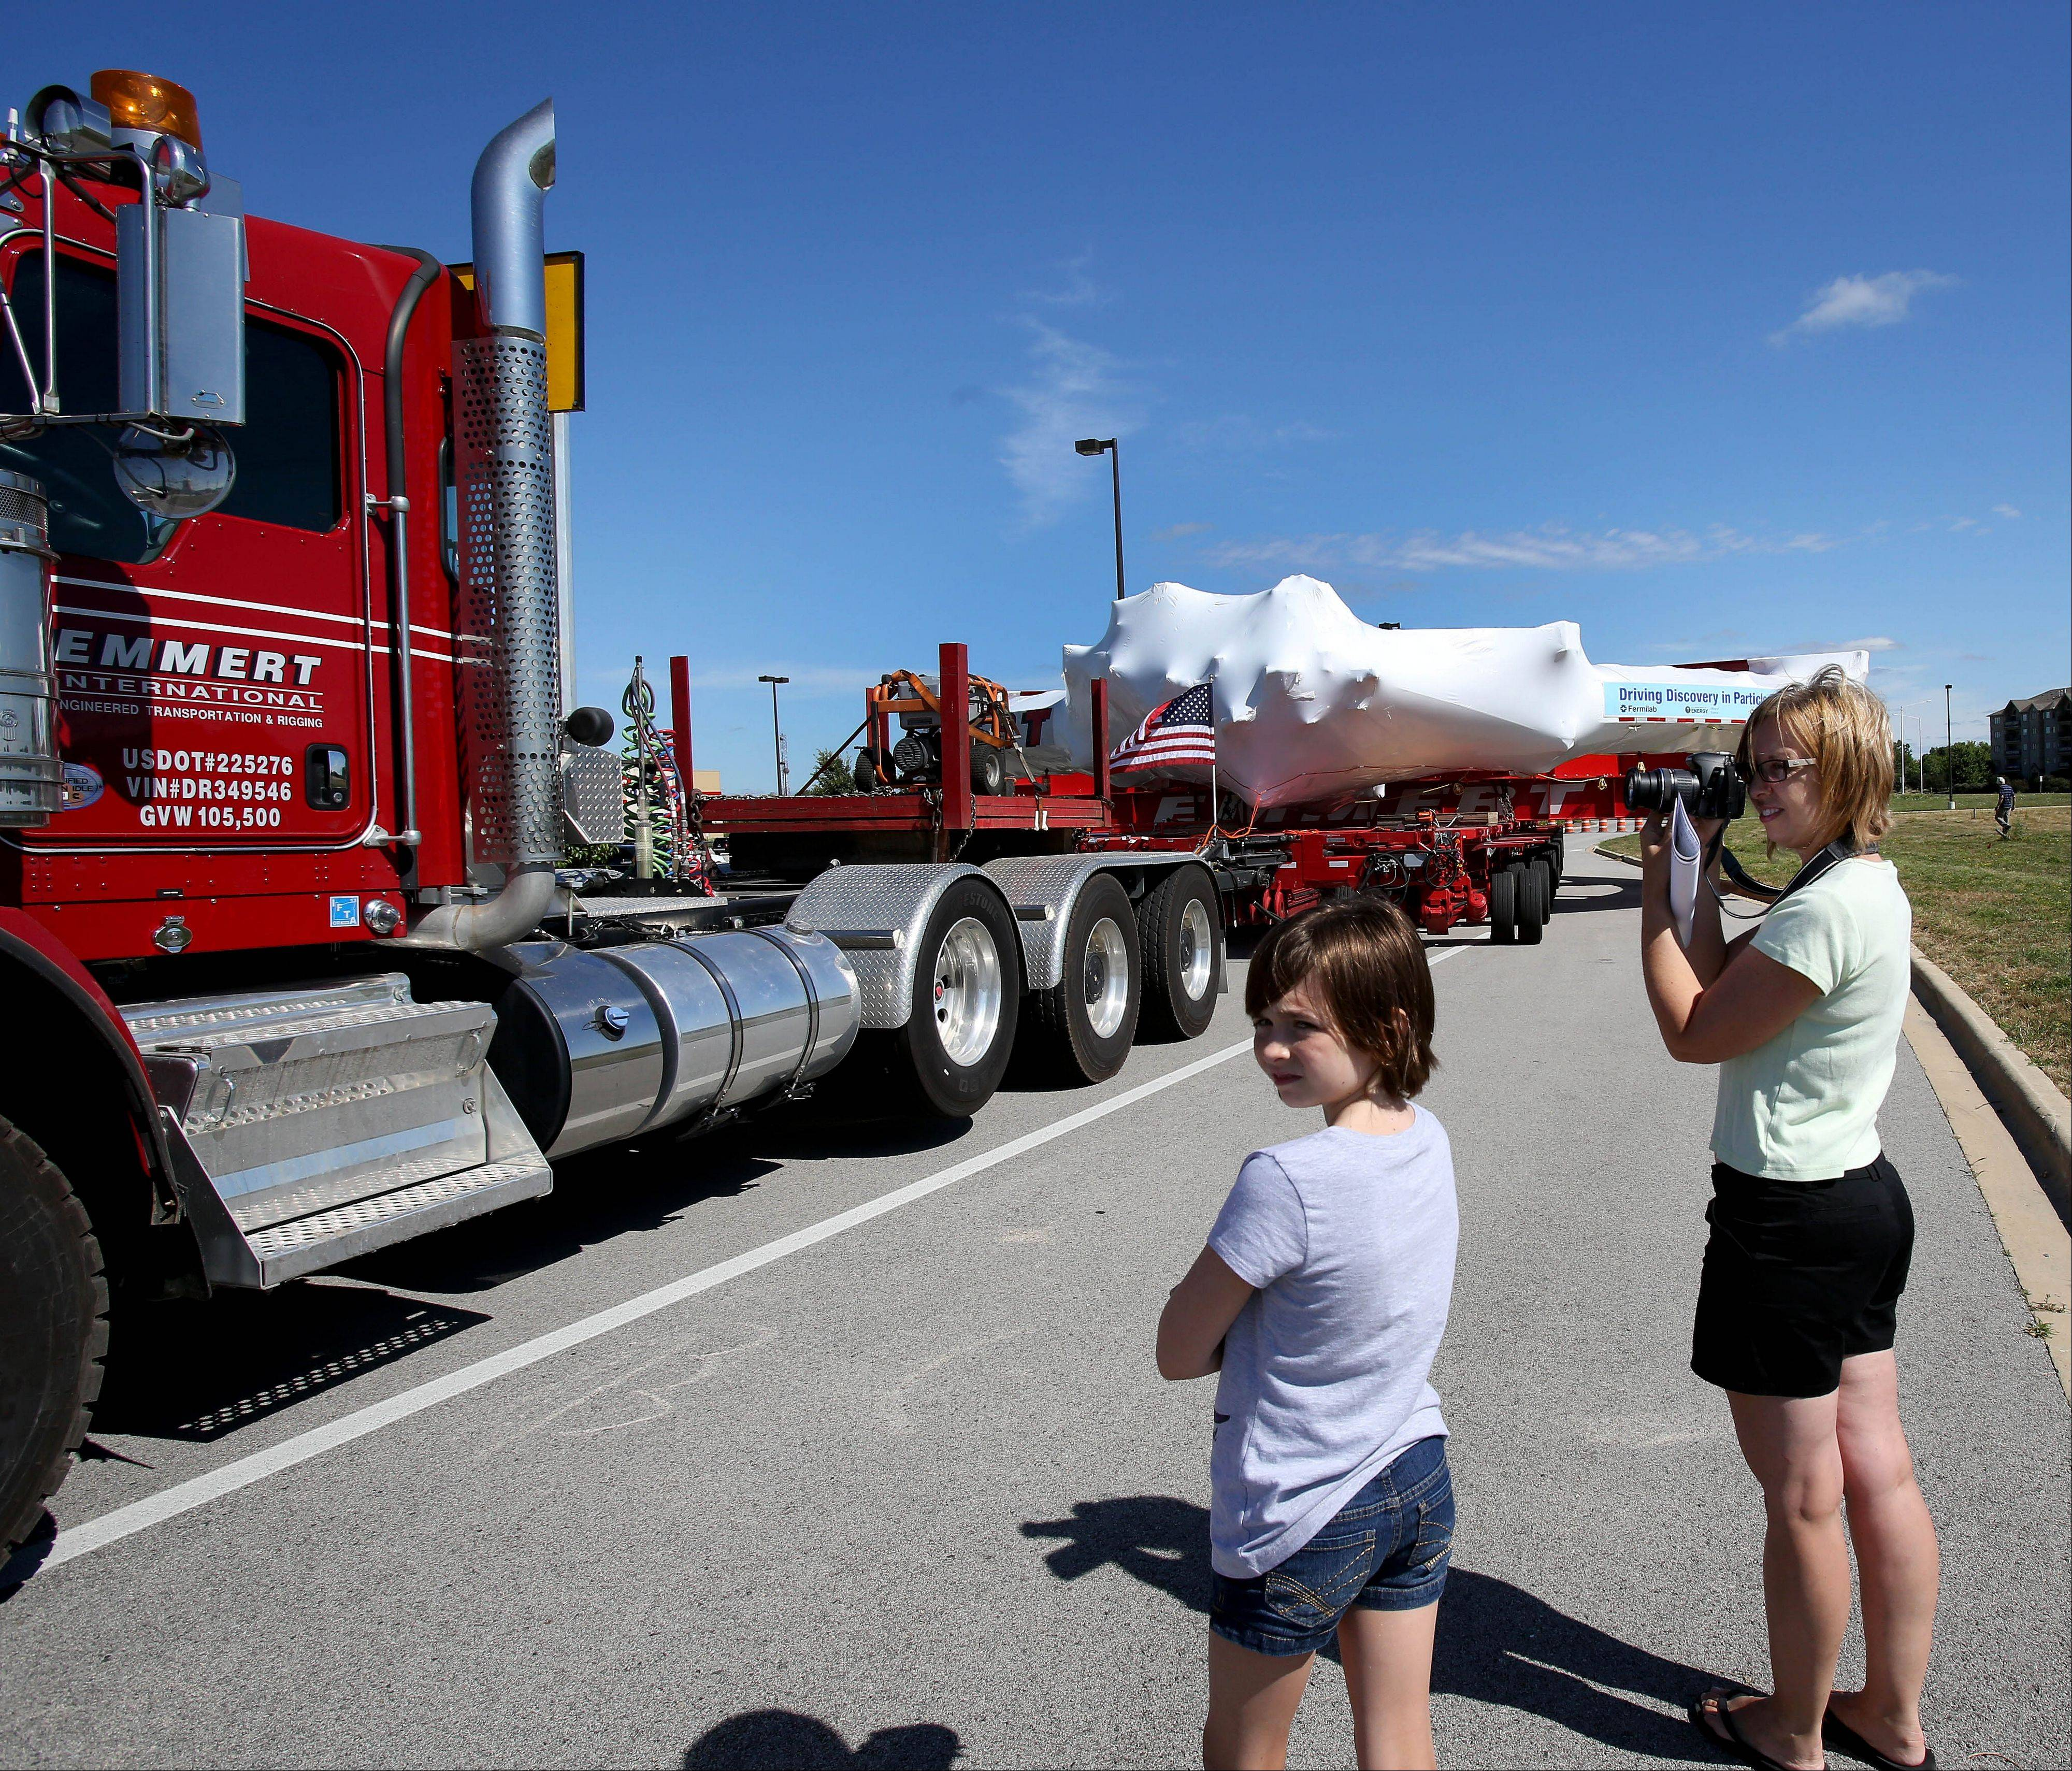 Lisa Wheaton of Bolingbrook and her daughter Amelia, 10, get some photos of the magnet as it made a stop on Wednesday at the Costco parking lot in Bolingbrook.